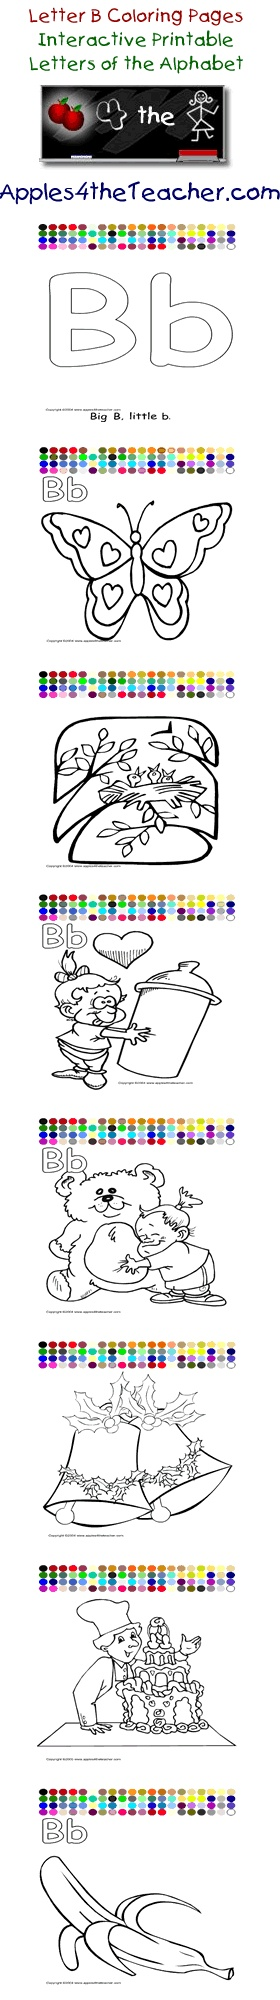 childrens interactive coloring pages - photo #20